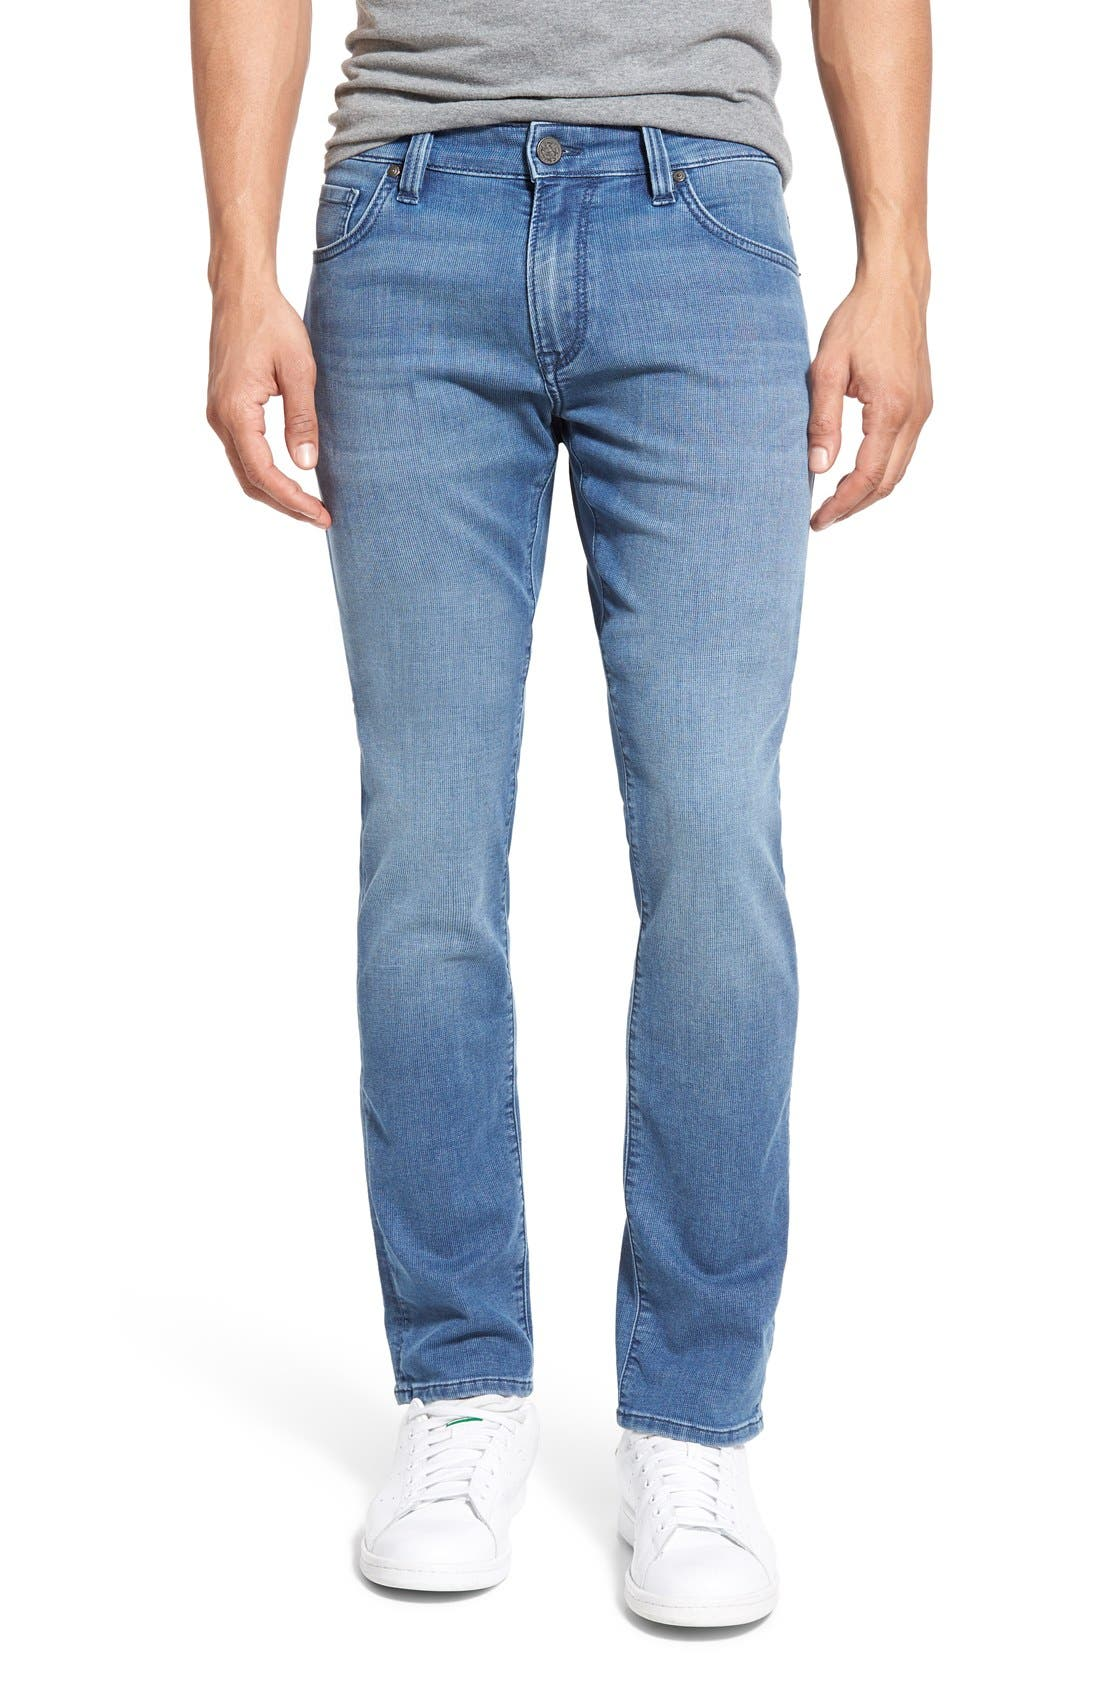 Men's 34 Heritage Courage Straight Leg Jeans